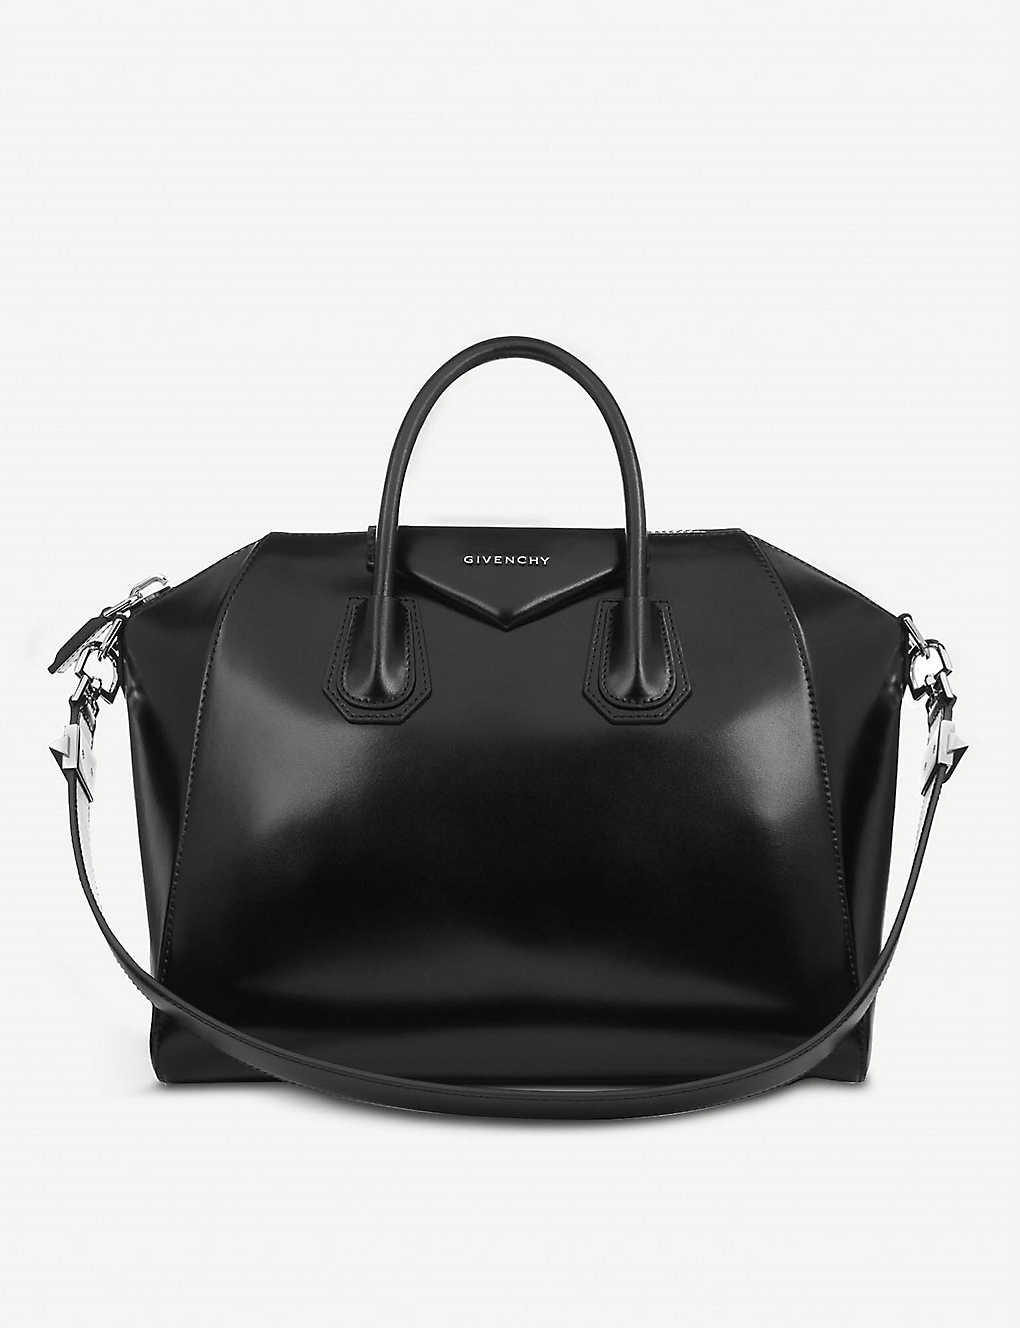 GIVENCHY - Antigona medium leather tote  4d8294ae34886